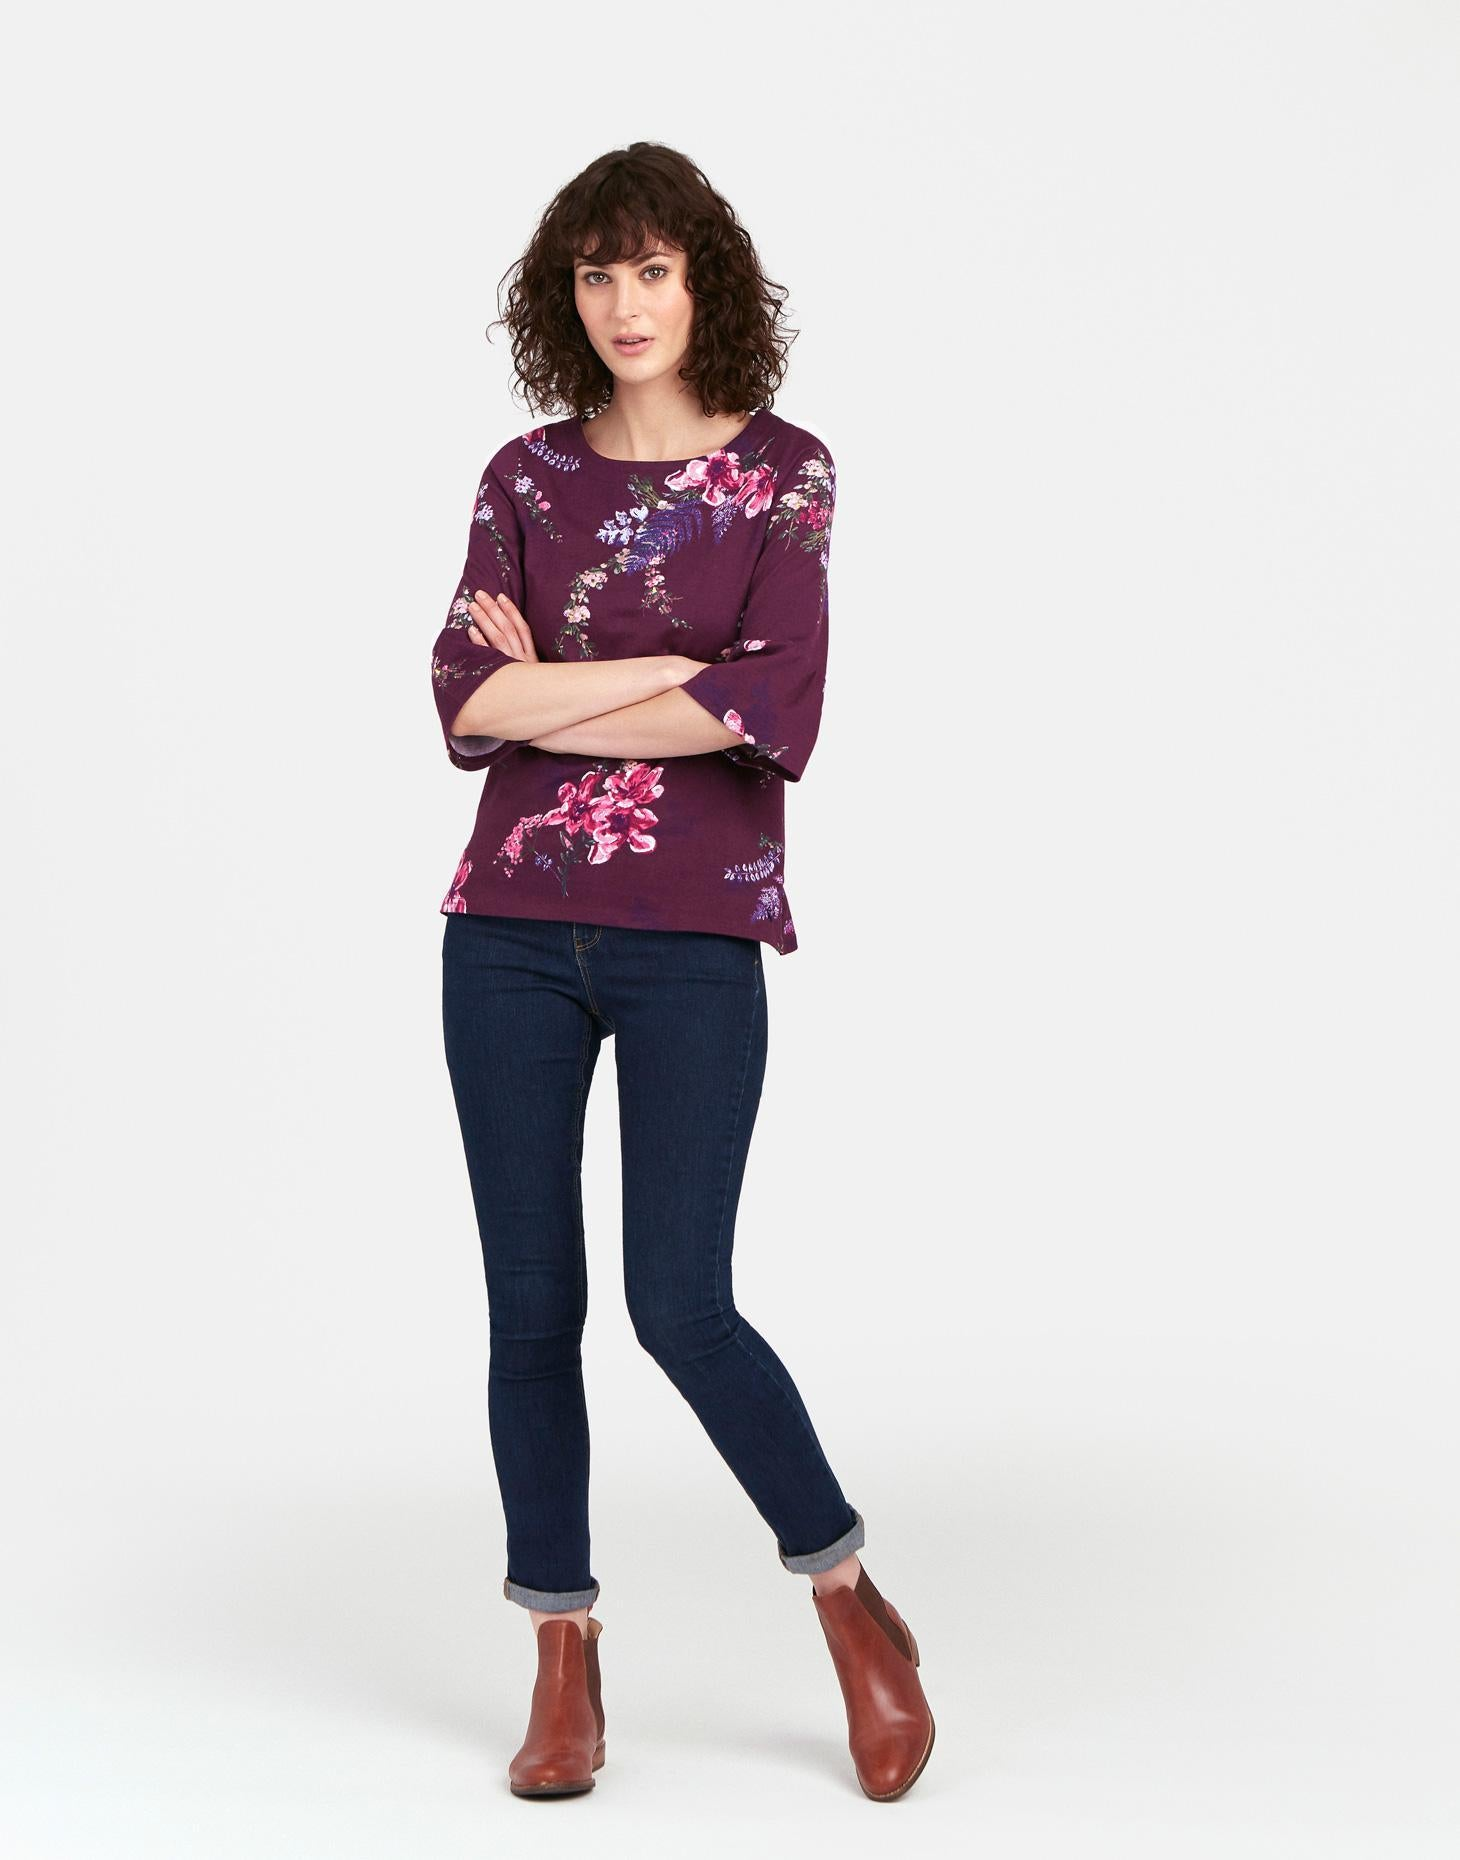 Joules Francesca top - printed Plum Harvest Floral Jersey